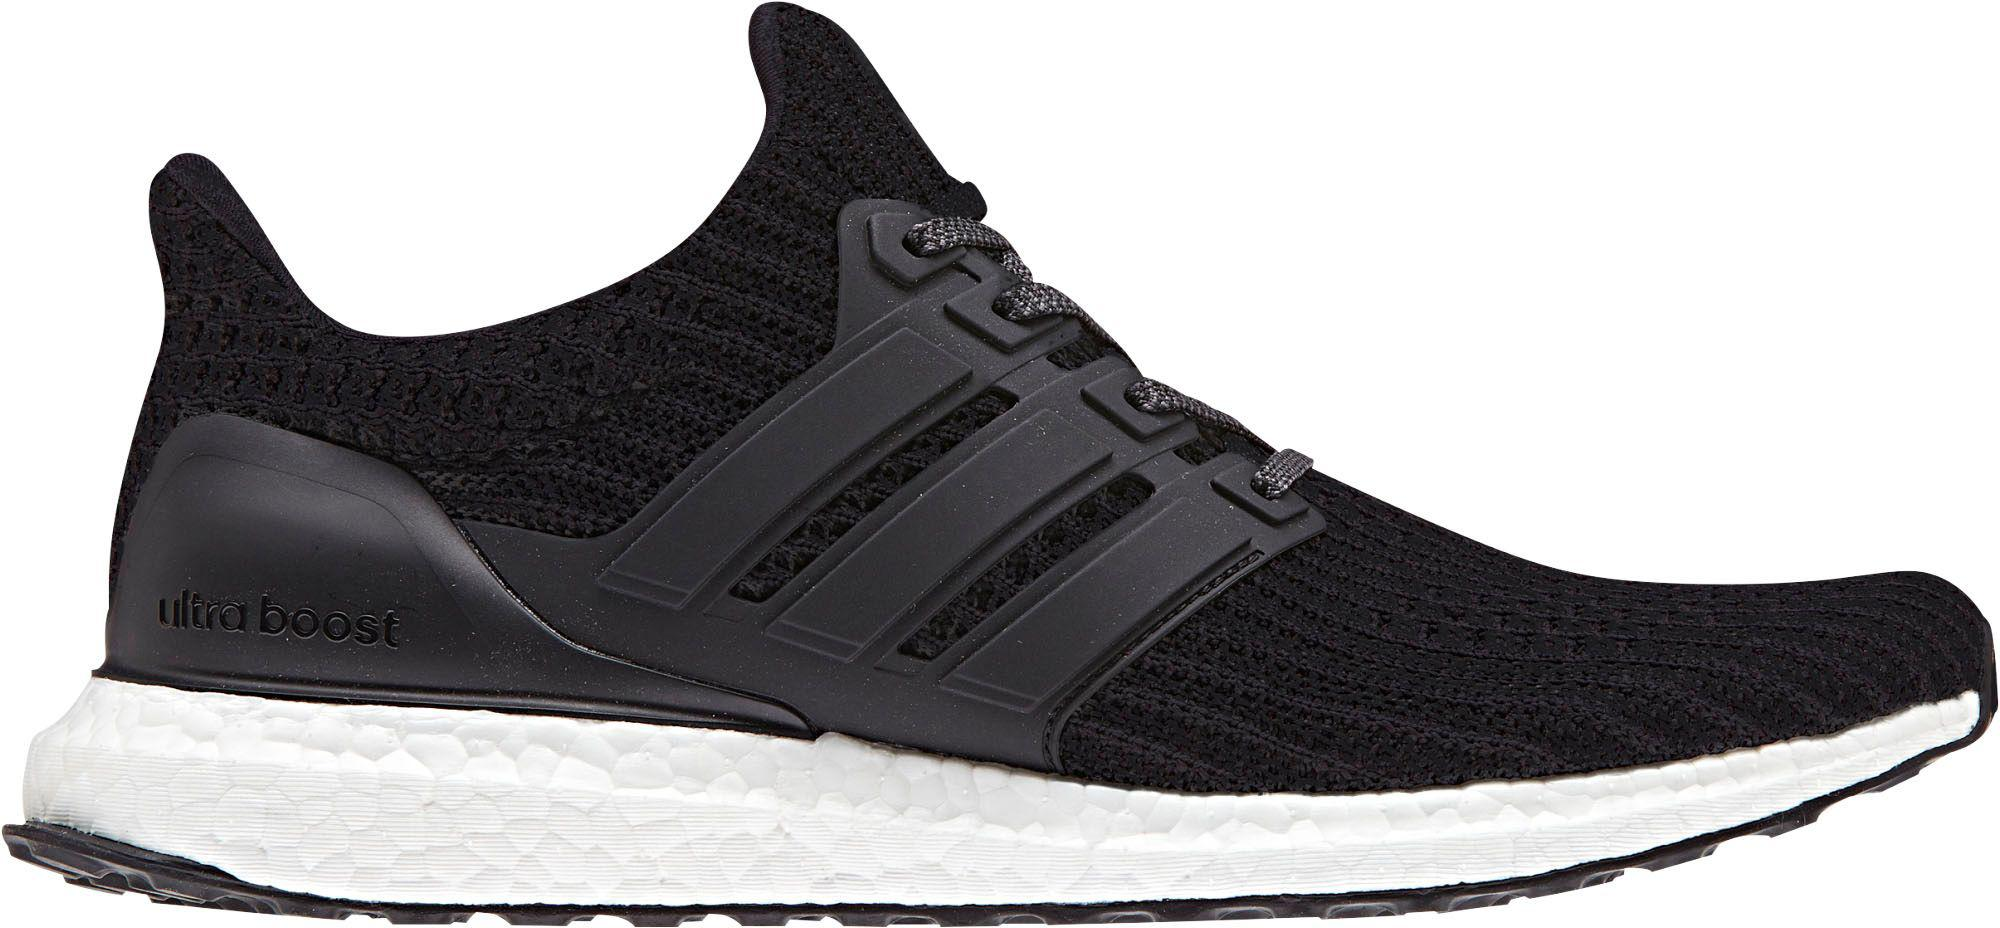 adidas ultra boost trainers for men running